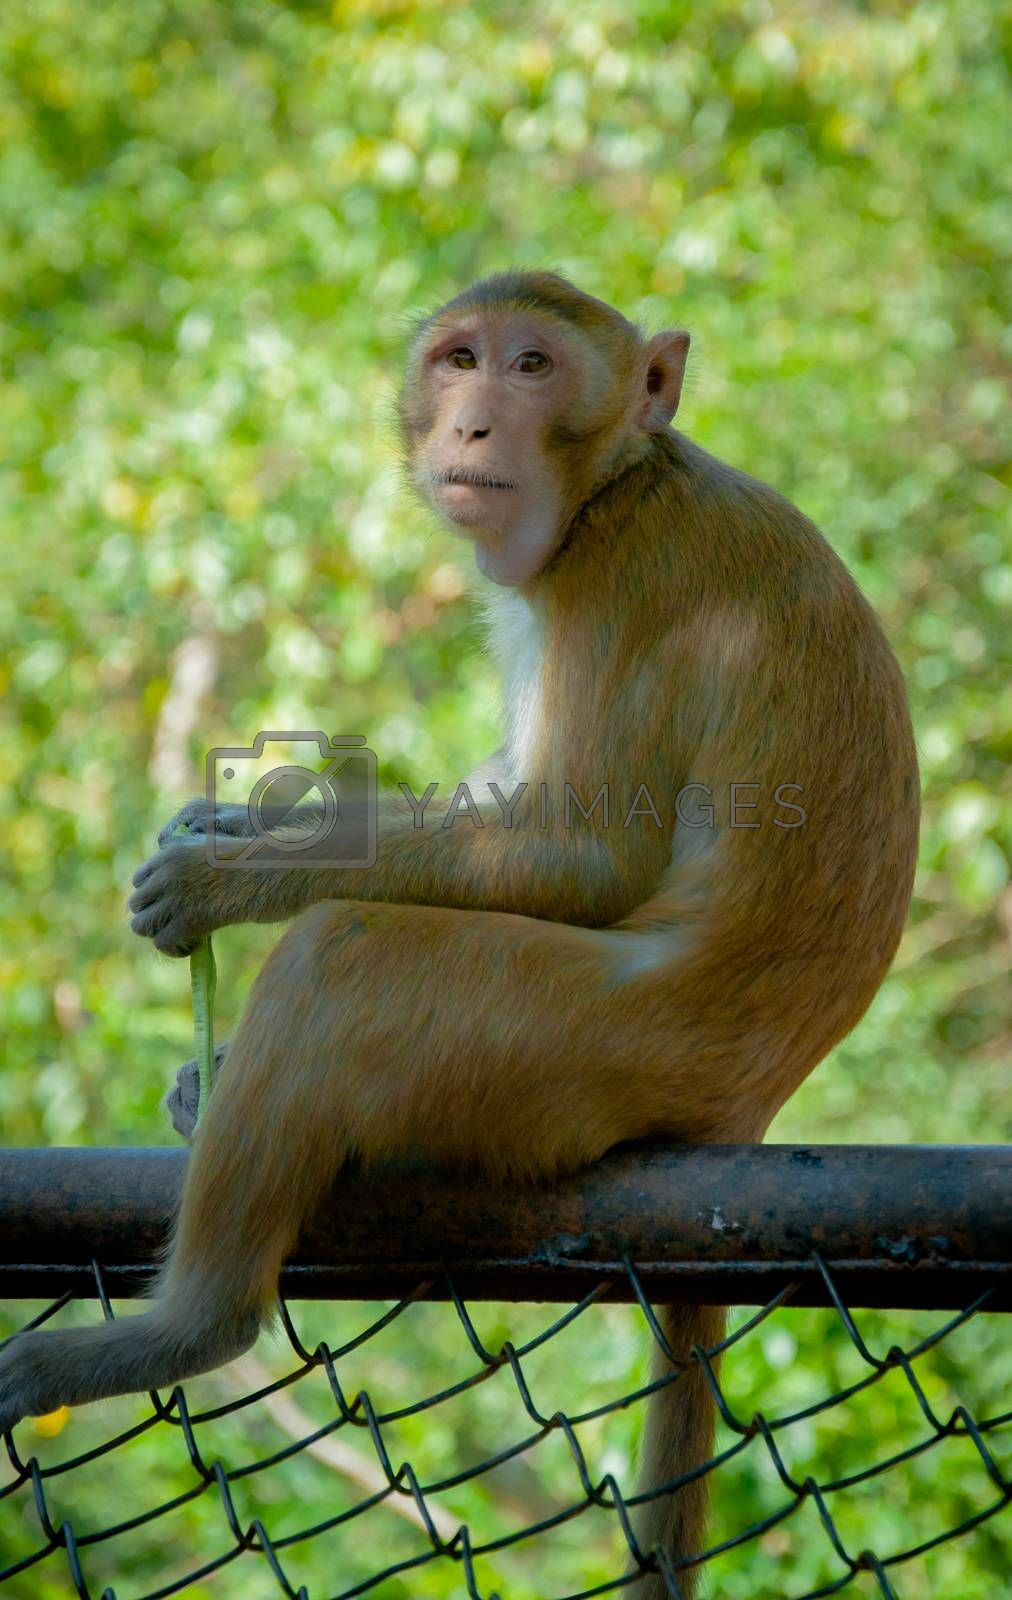 monkey sitting on fence for background. by gukgui